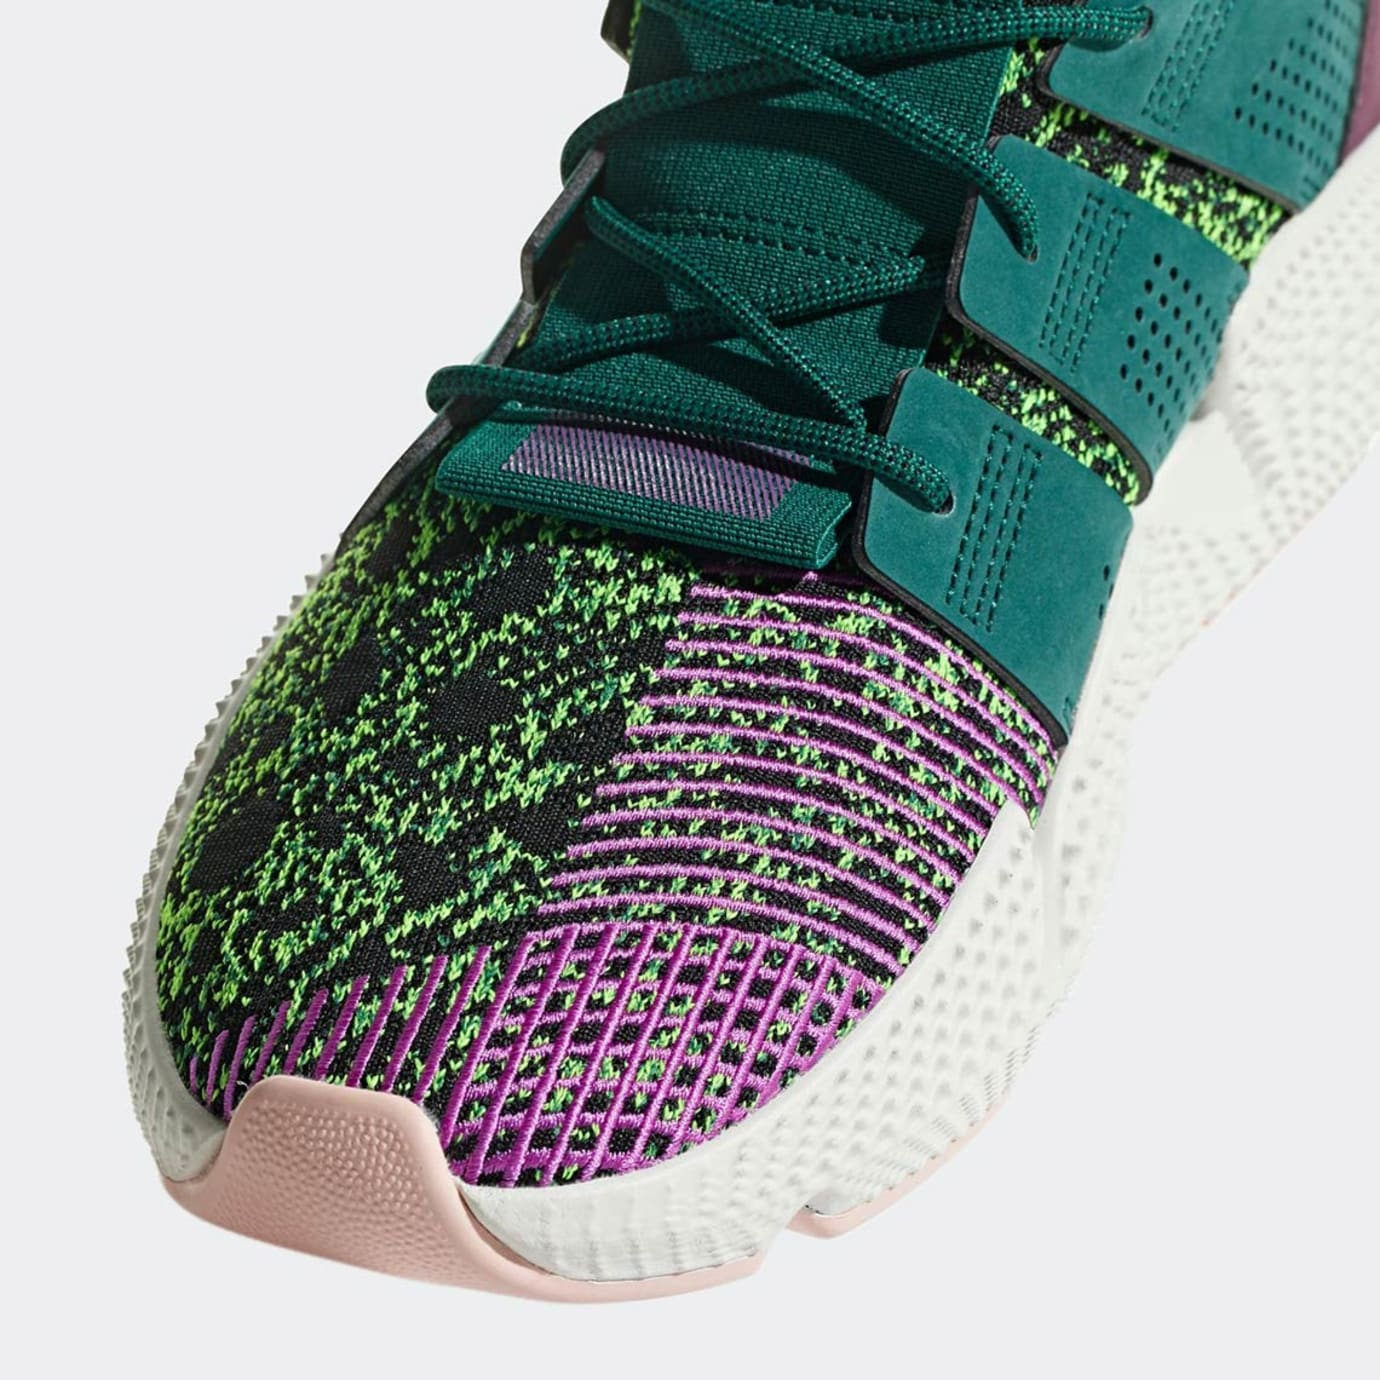 pretty nice 885c0 cae4f Image via Adidas Dragon Ball Z x Adidas Prophere Cell Release Date D97053  Toe